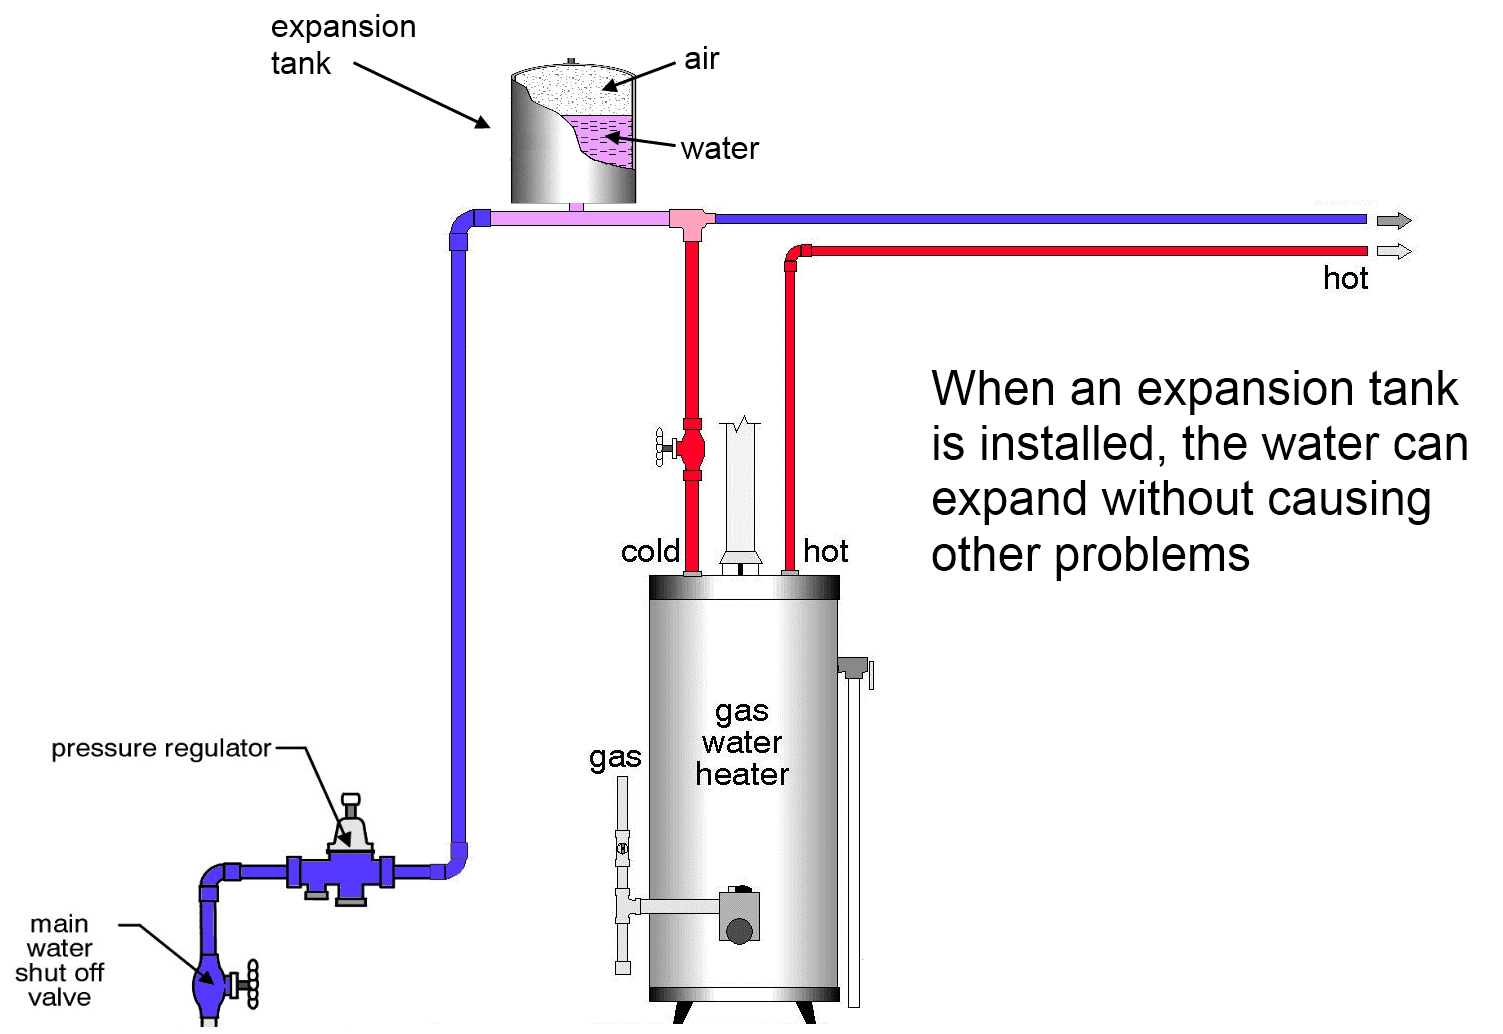 hight resolution of  expansion tank installed thermal expansion of water and the role of an expansion tank hot water